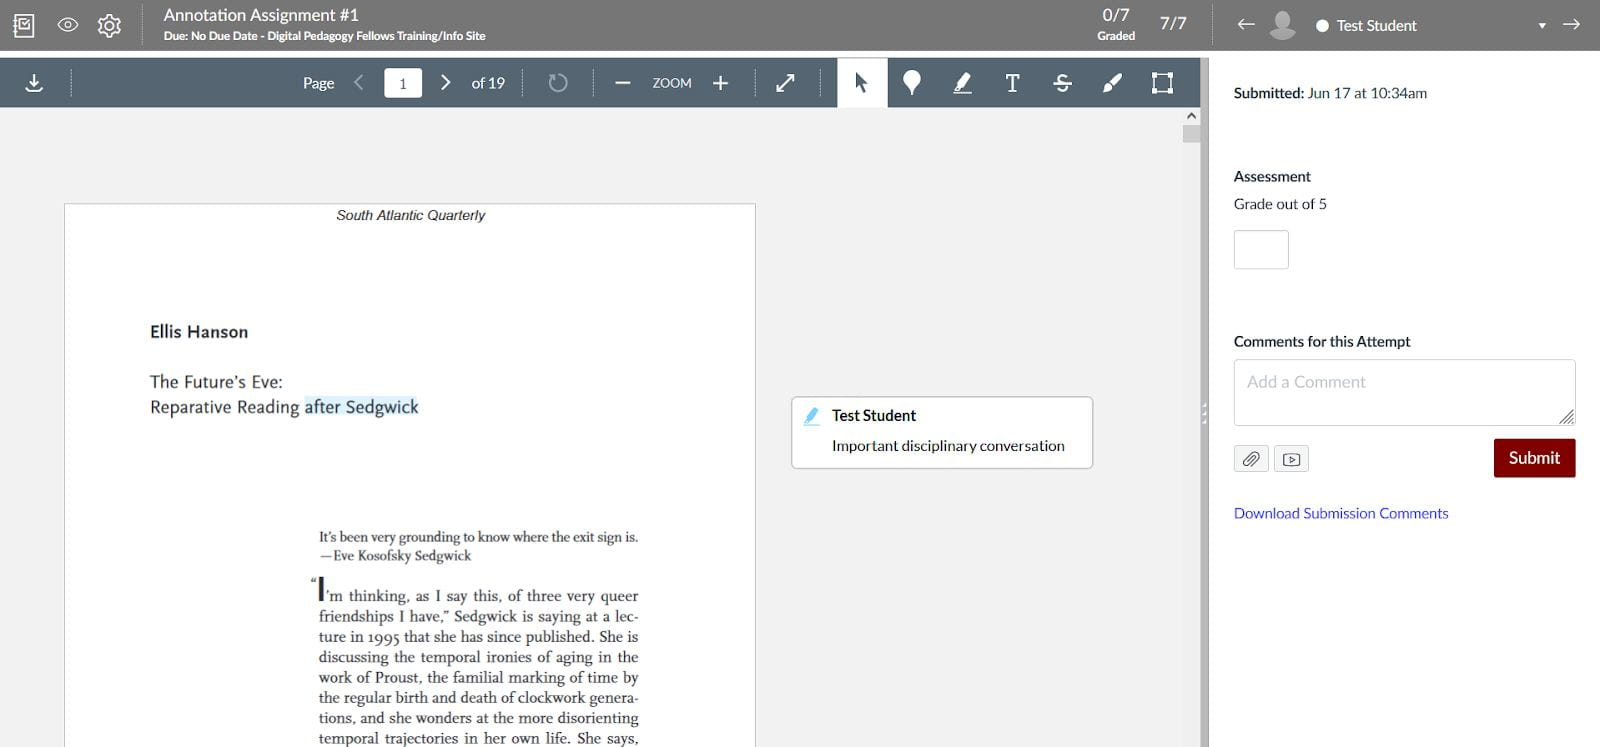 SpeedGrader with annotation assignment open